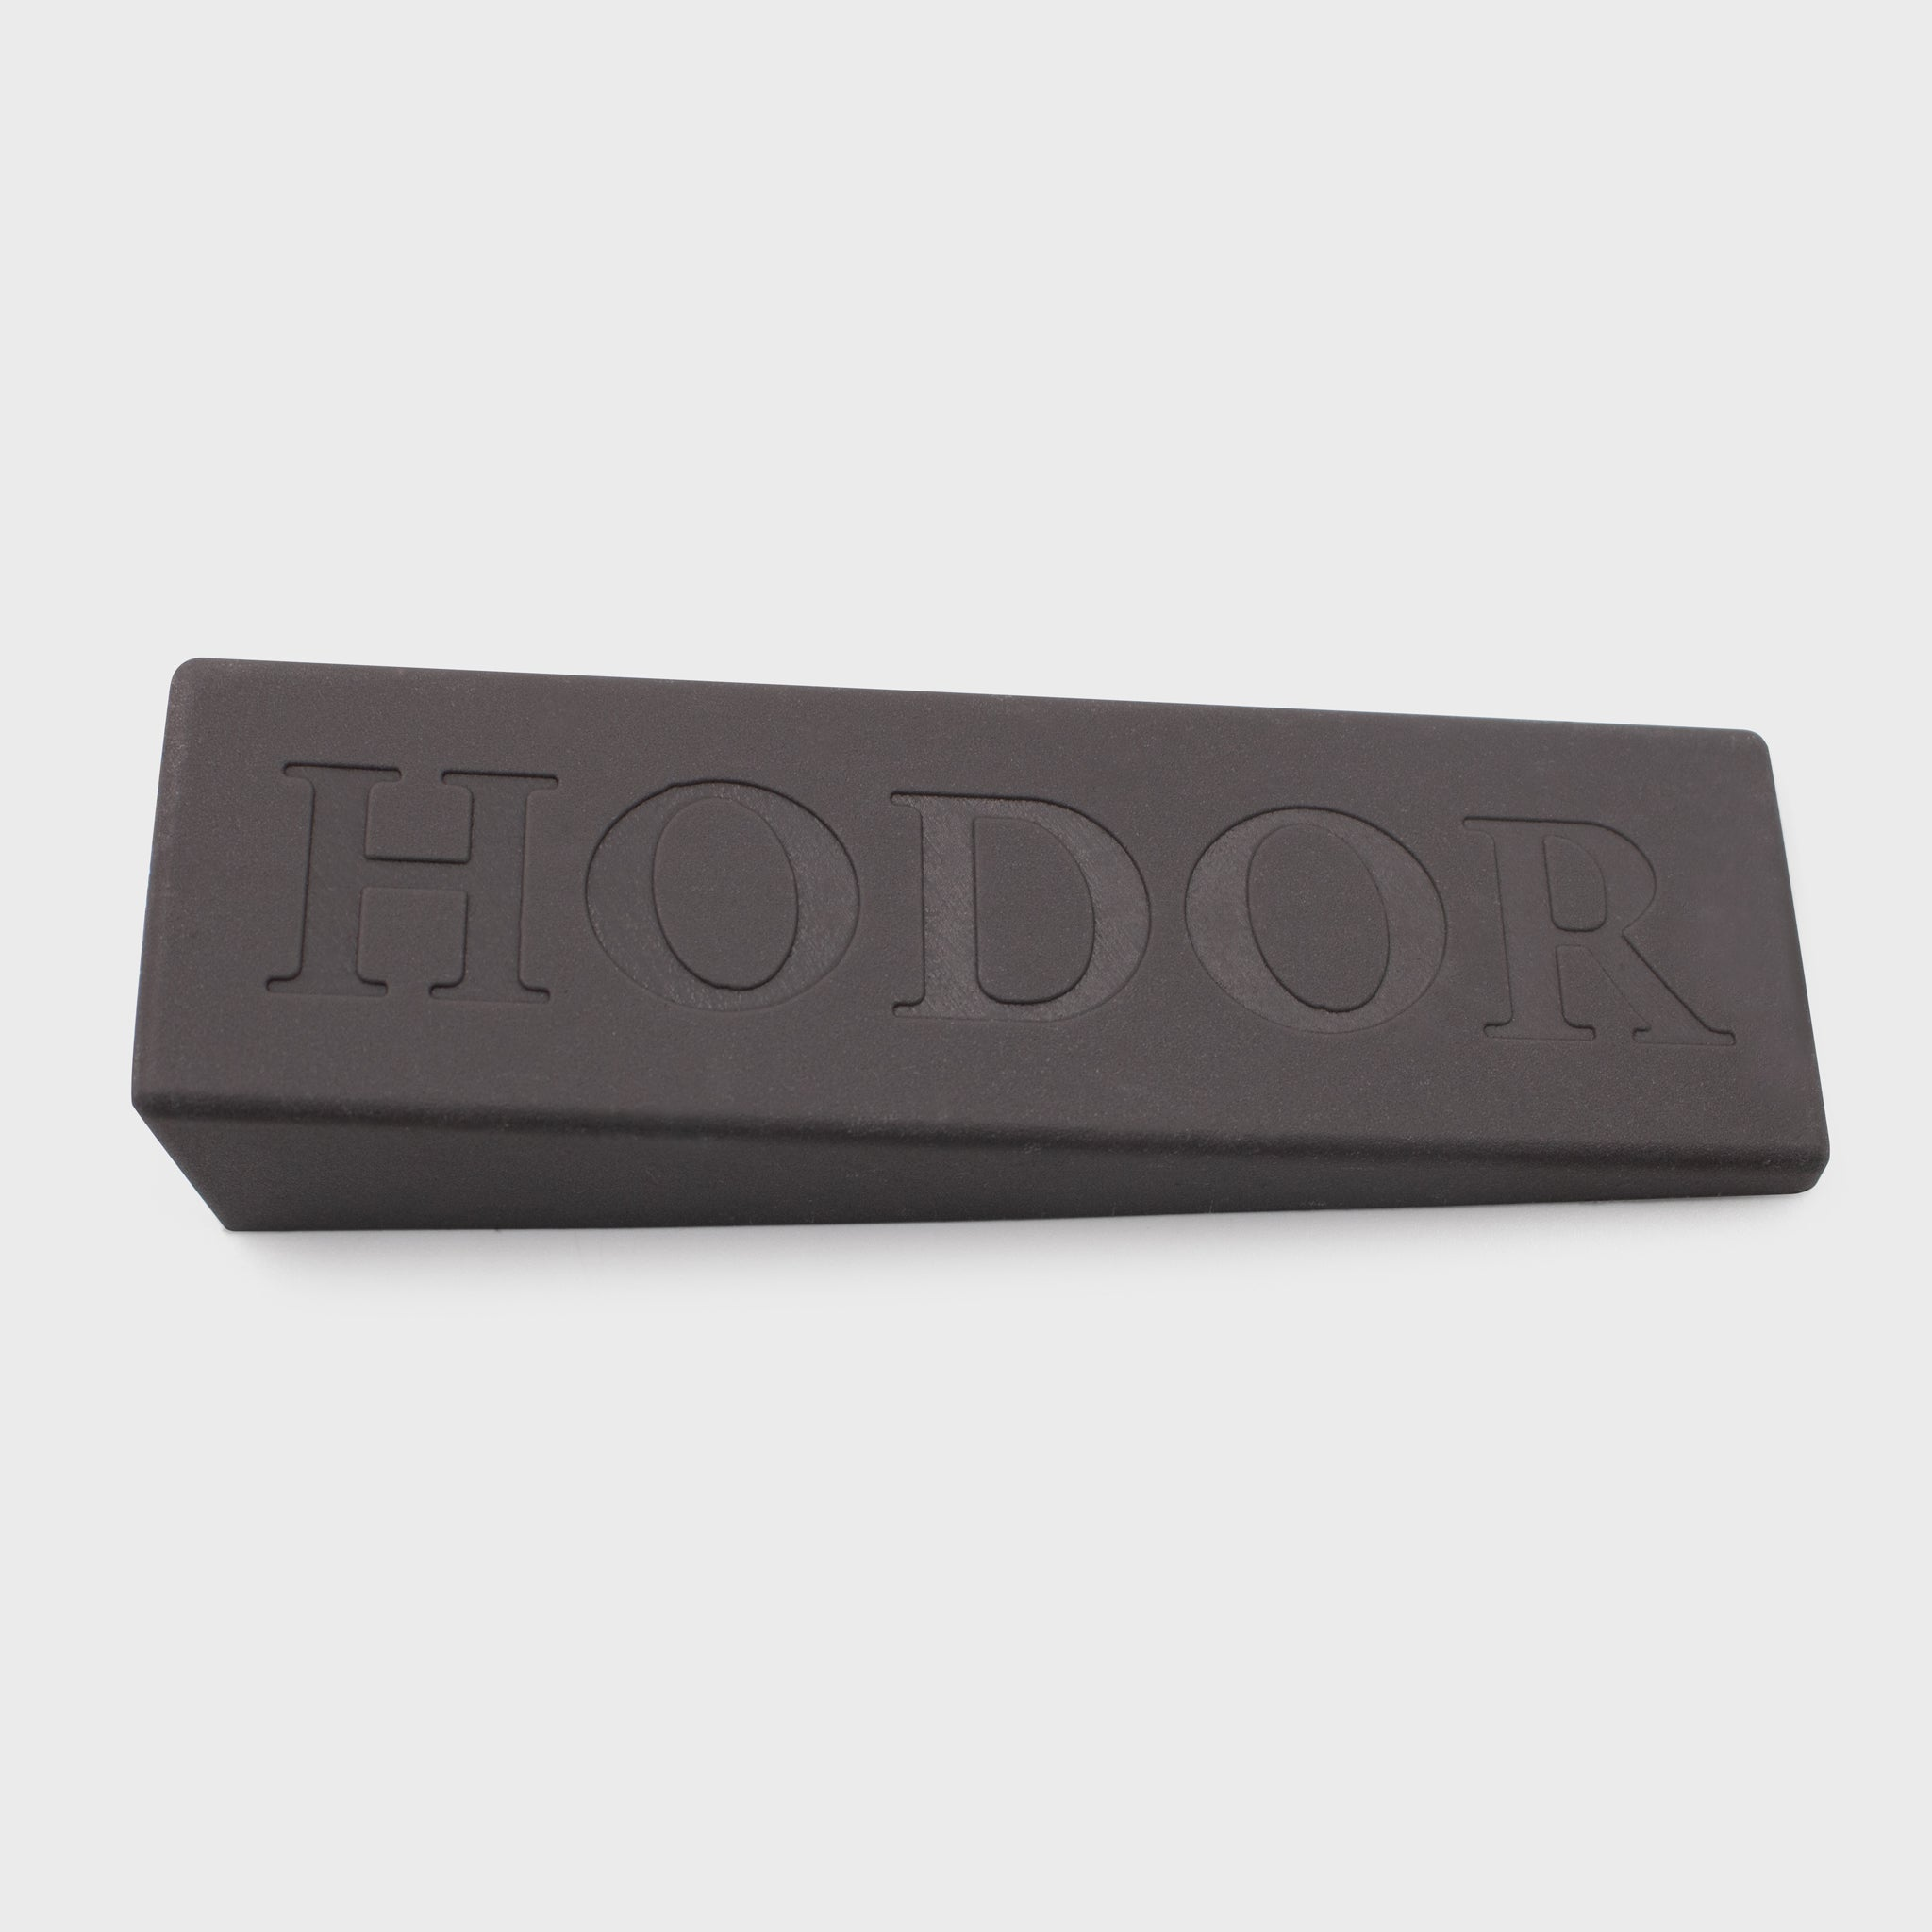 game of thrones got box hodor doorstop collectibles exclusives collector collection culturefly